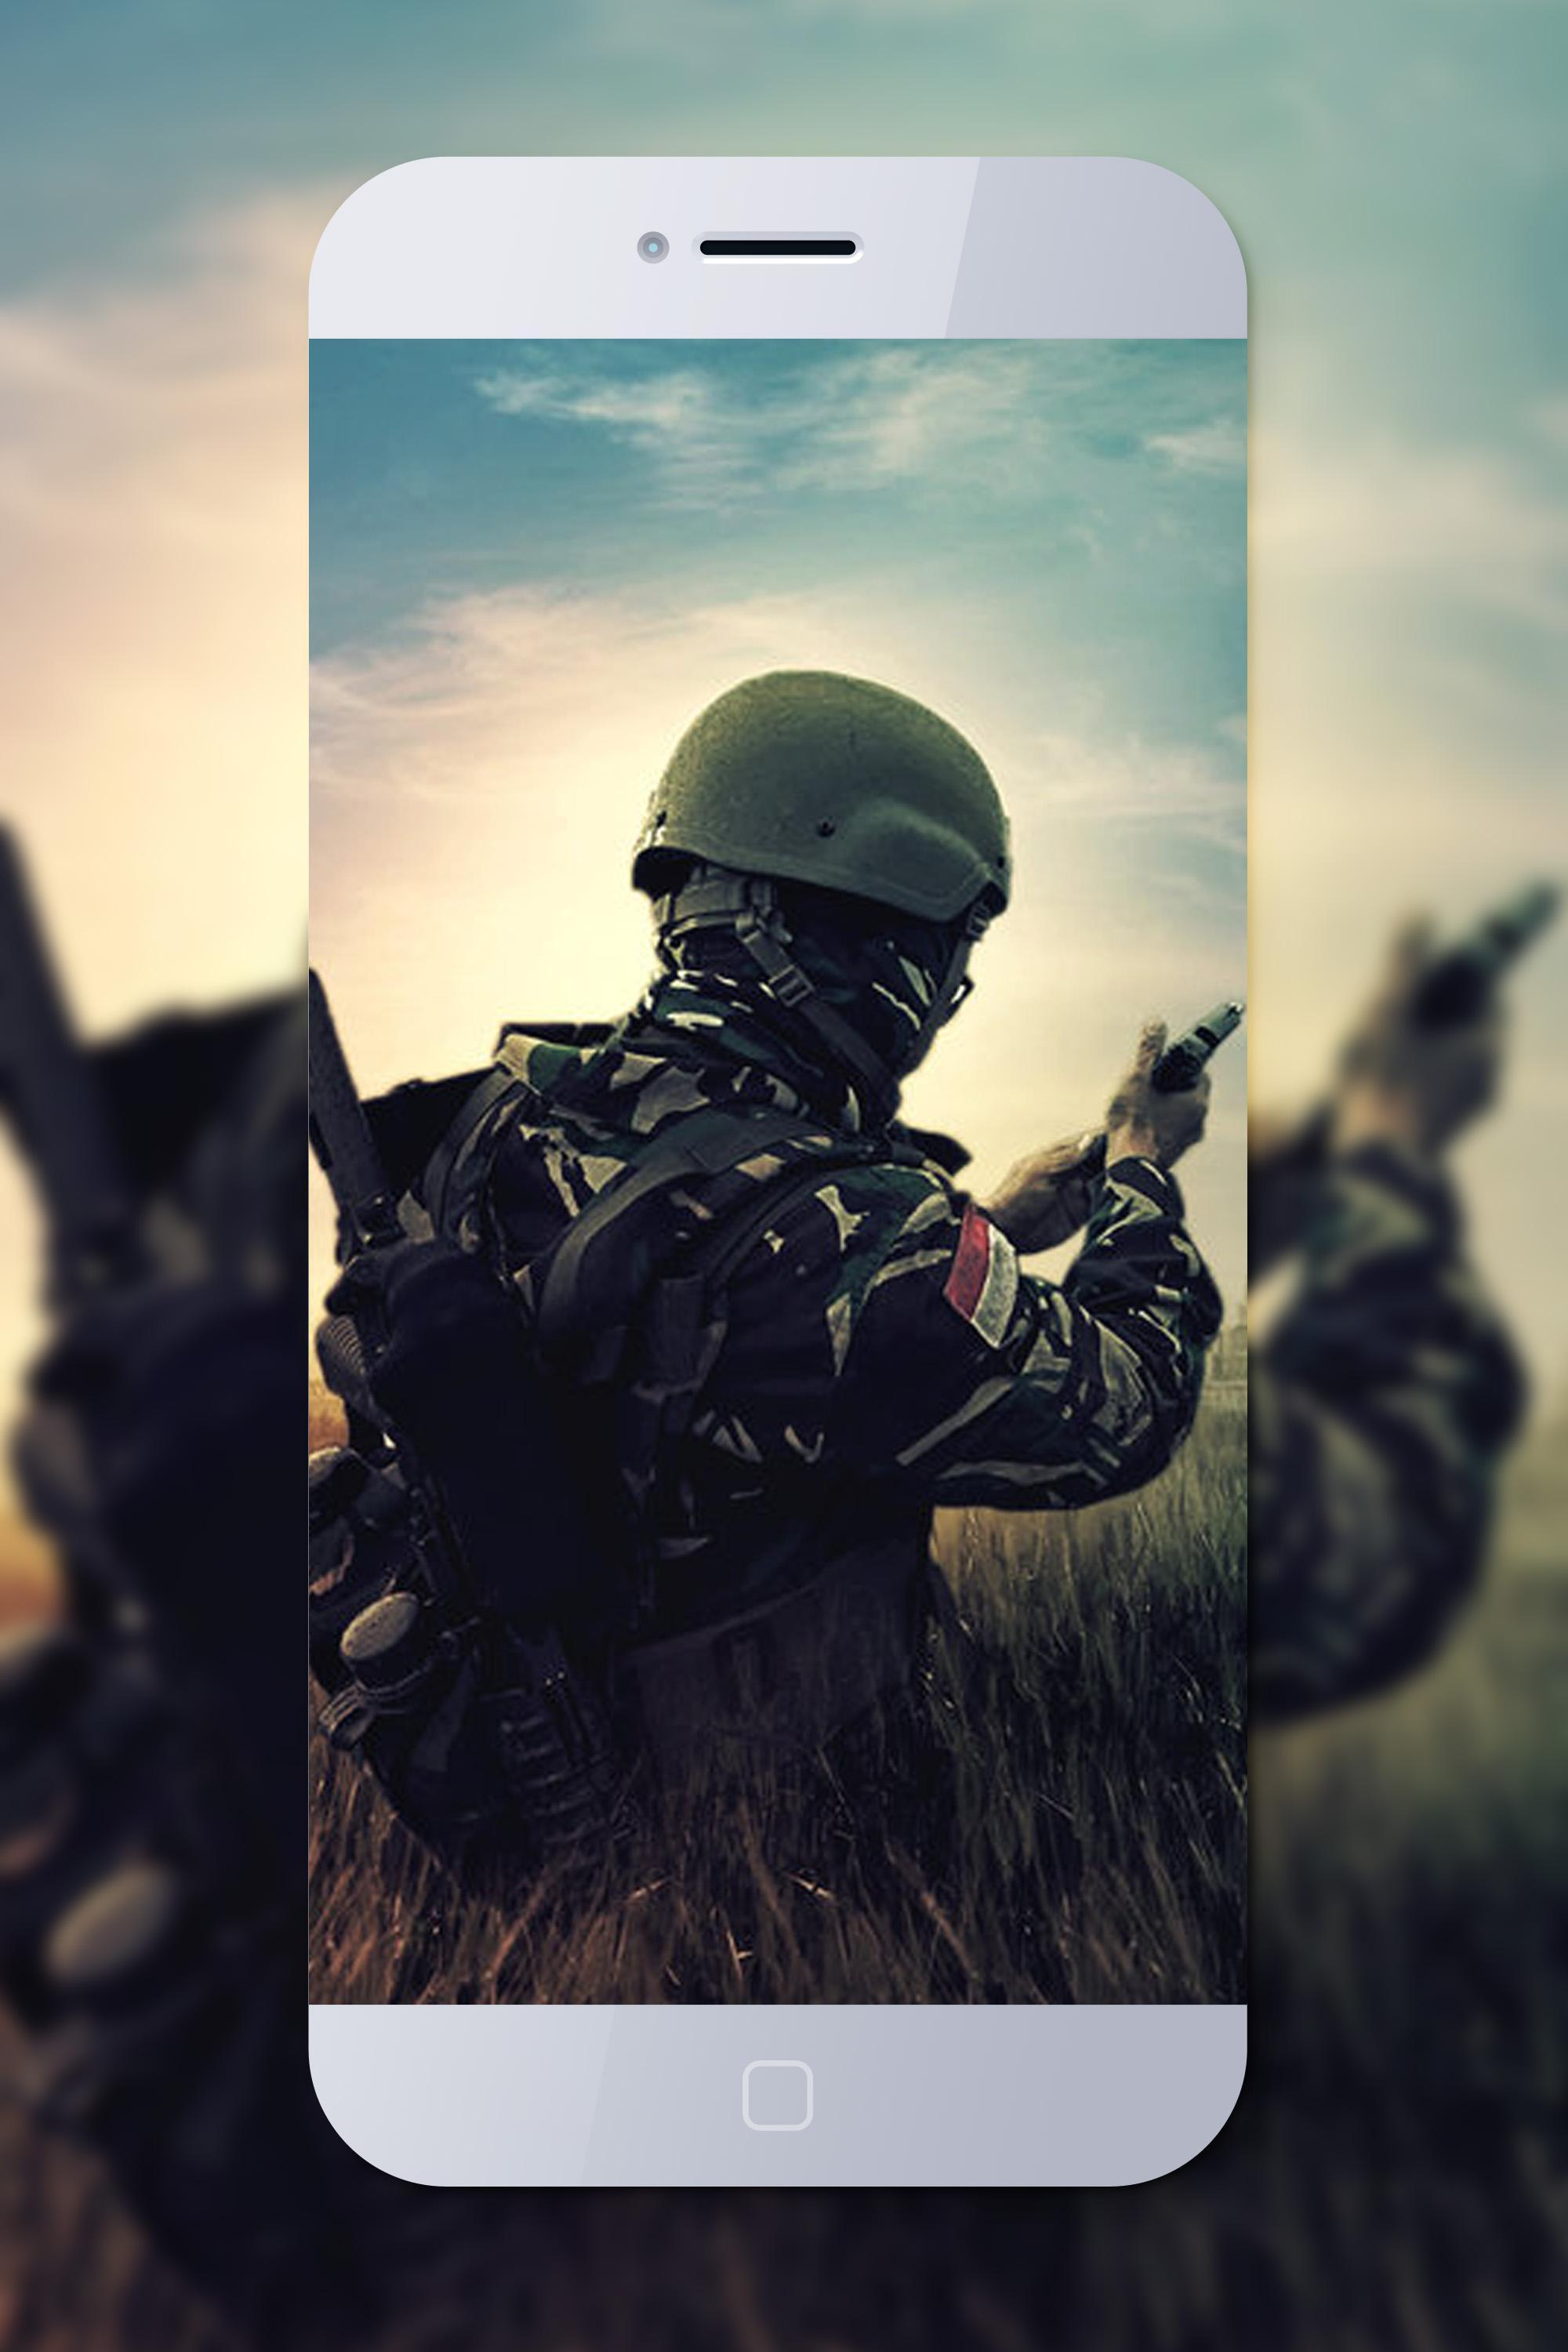 Army Wallpaper Hd For Android Apk Download